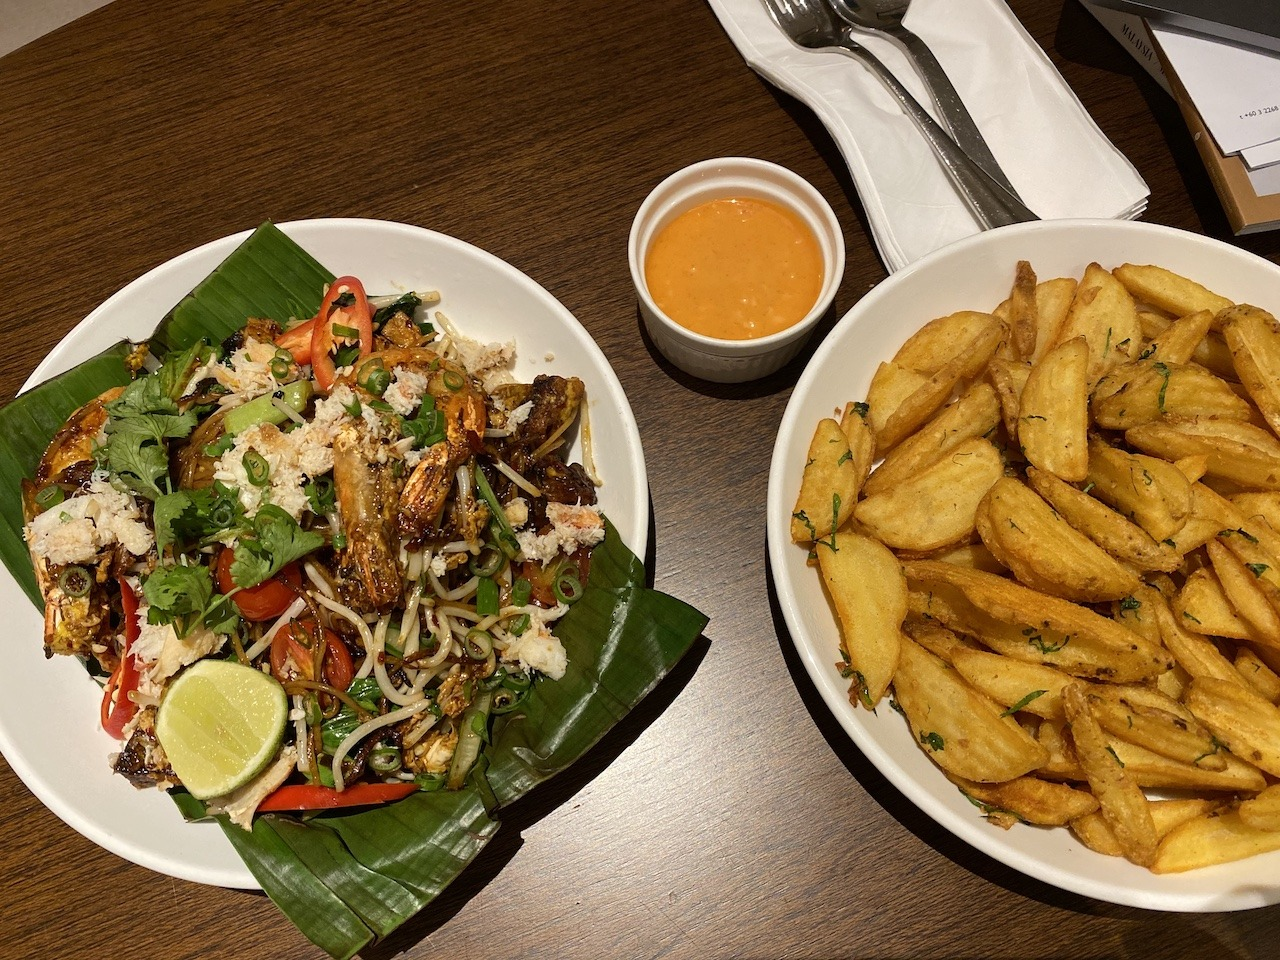 Crab fried rice and fries